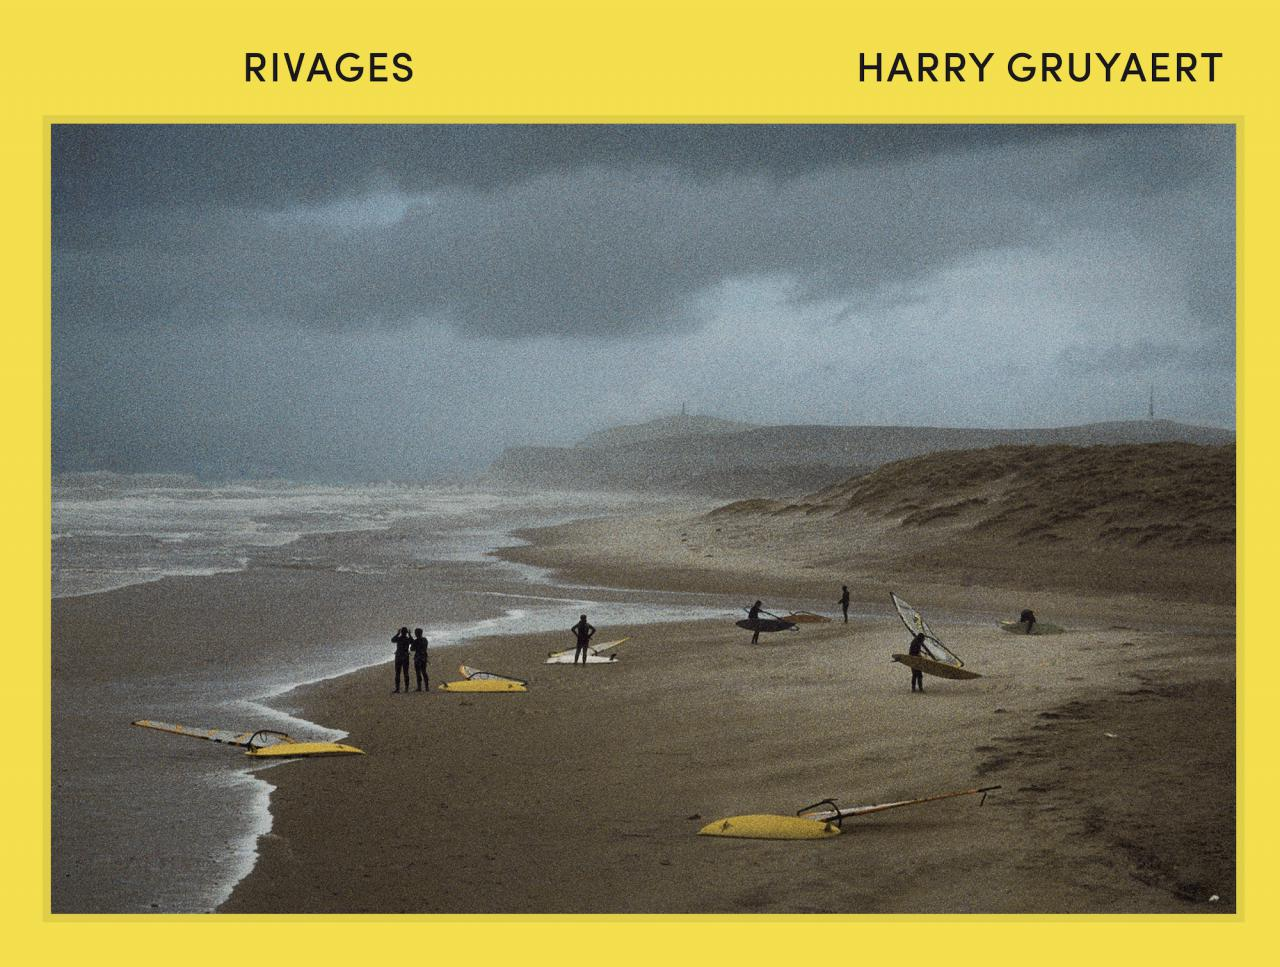 Harry Gruyaert: Rivages